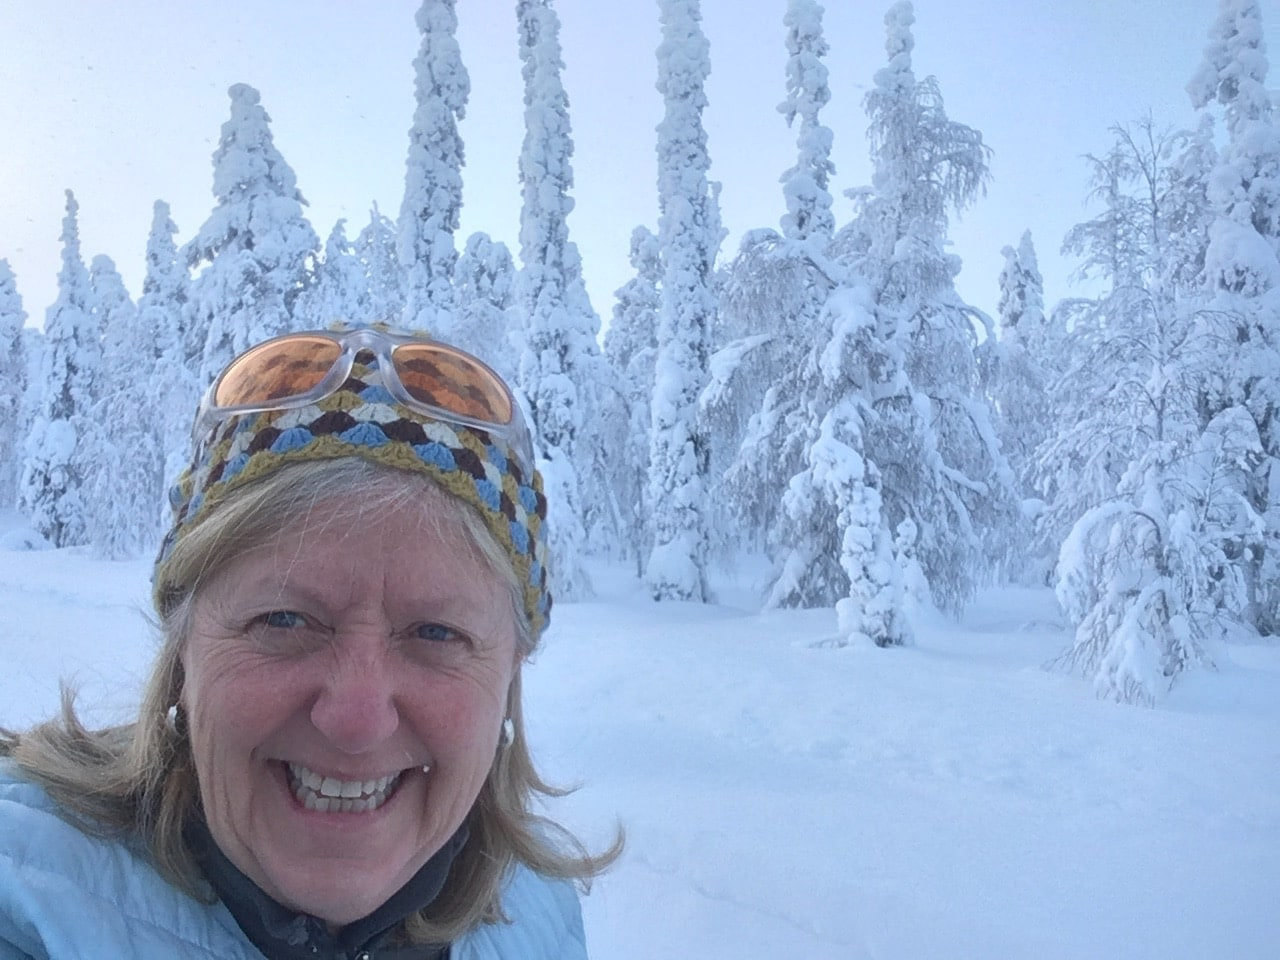 lapland-fairytale-finland-landscape-melanie-ceo-rare-finds-travel